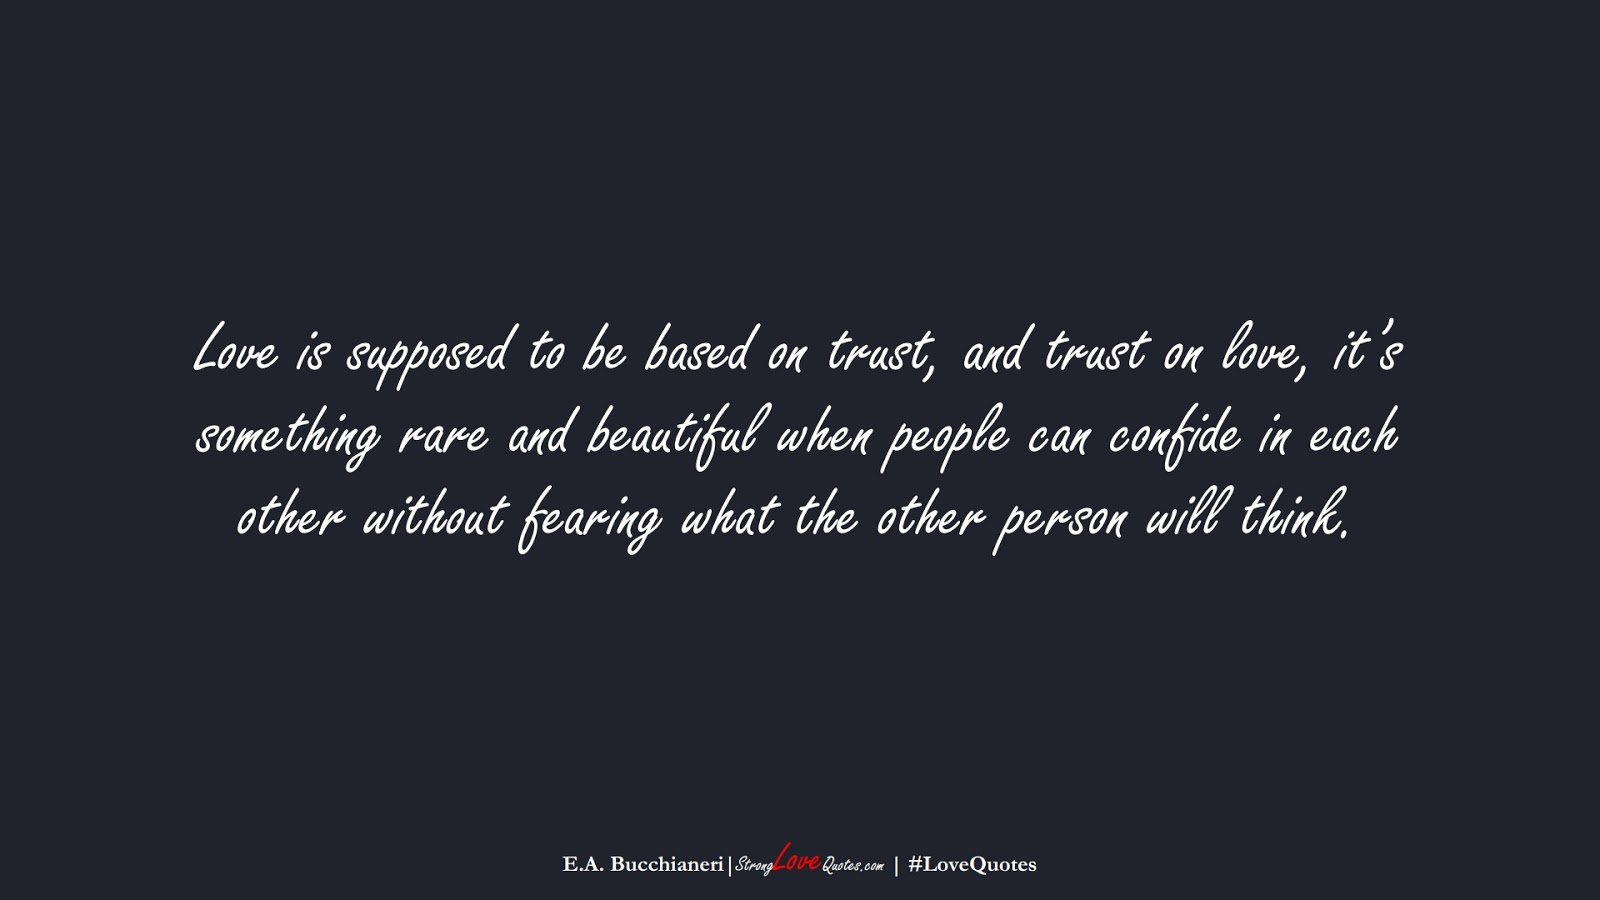 Love is supposed to be based on trust, and trust on love, it's something rare and beautiful when people can confide in each other without fearing what the other person will think. (E.A. Bucchianeri);  #LoveQuotes